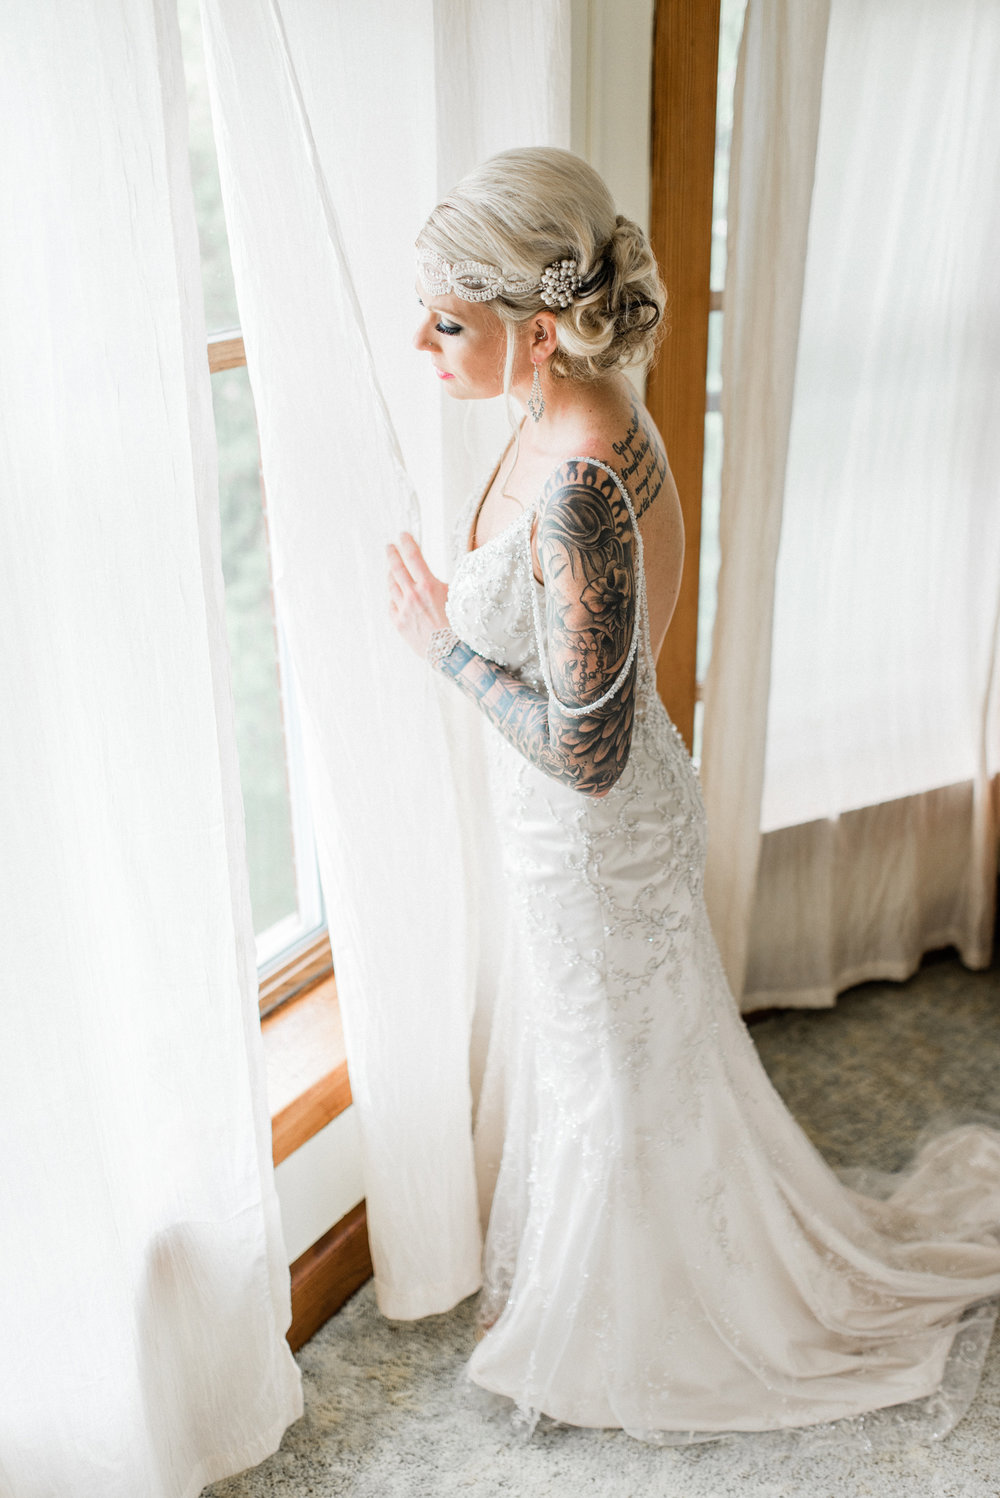 Tattooed bride looking out of a window on wedding day.